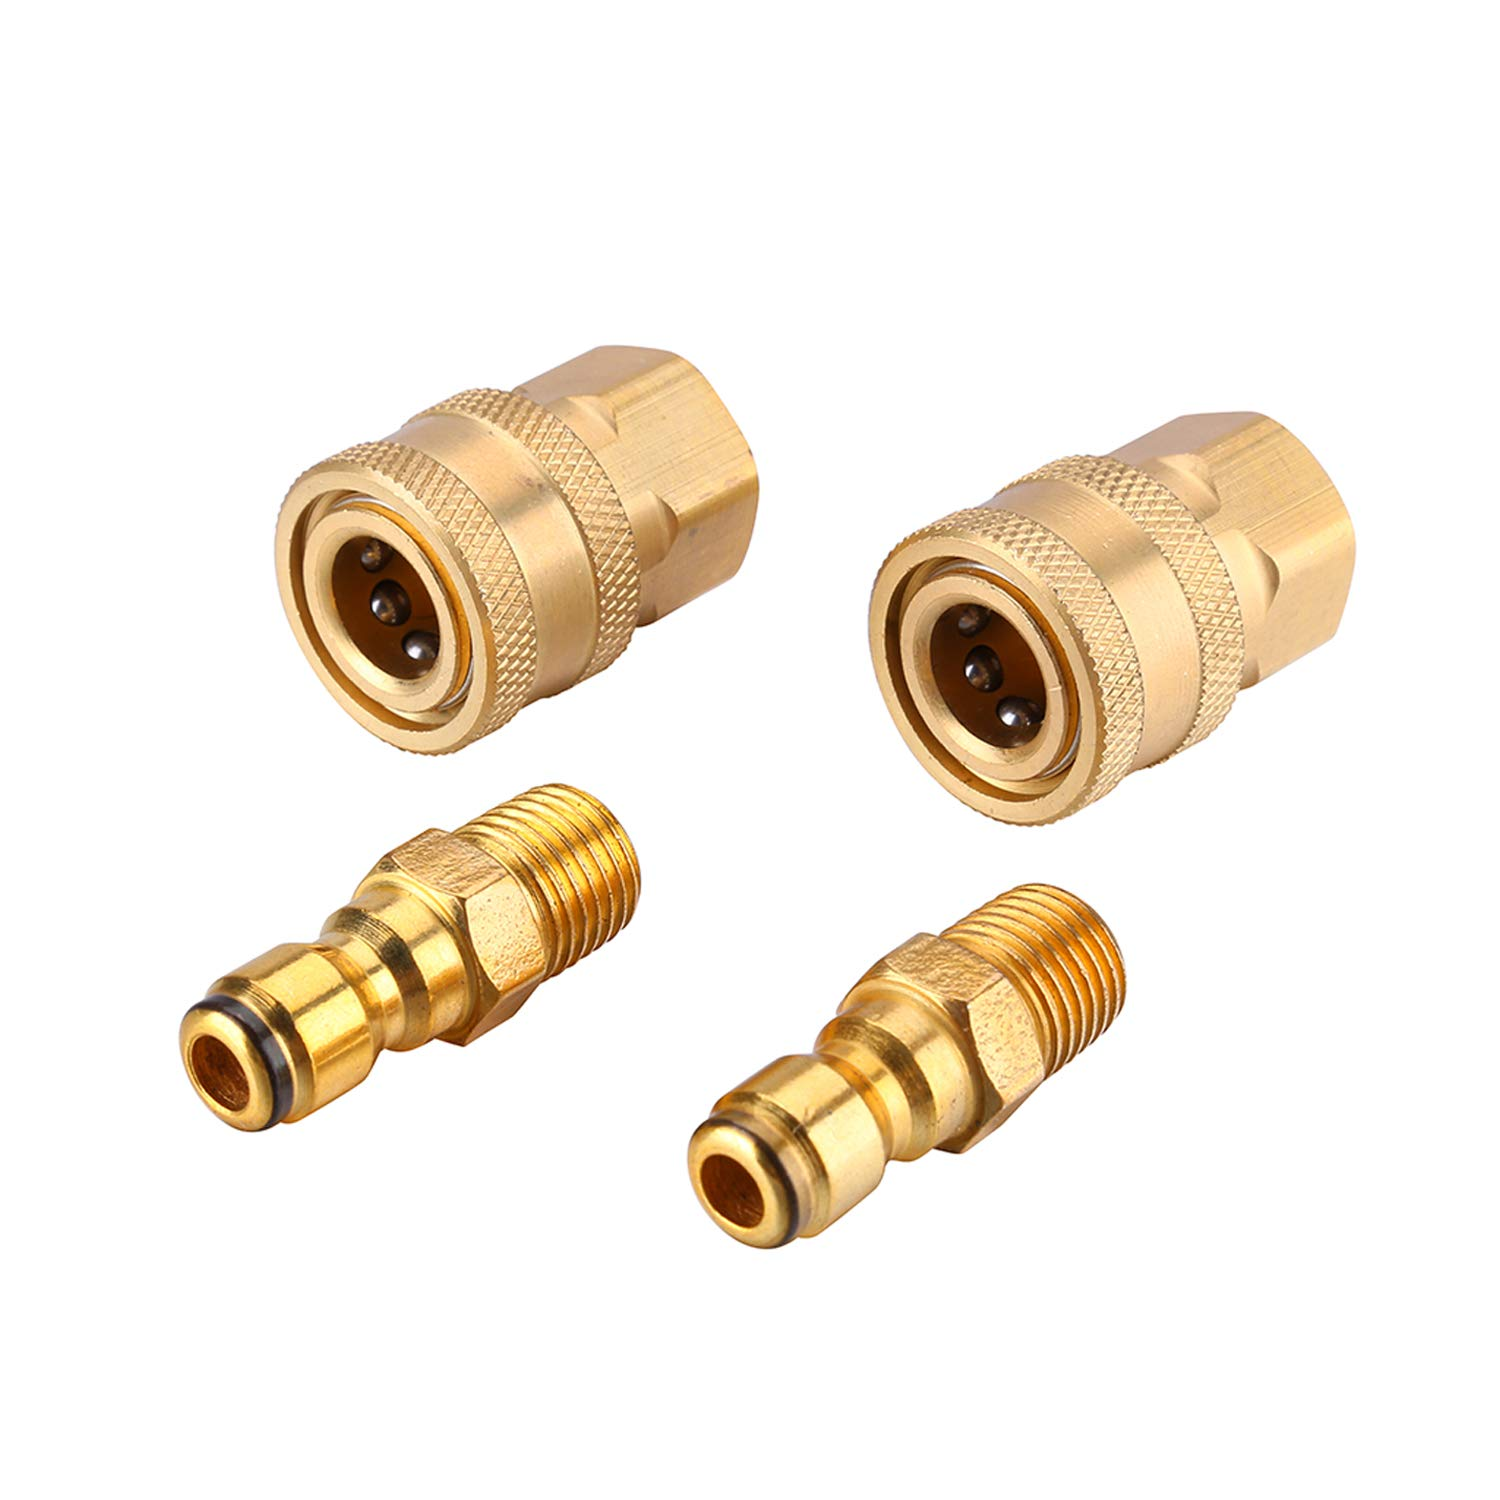 """Challco 1/4 inch Quick Connect Pressure Washer Adapter Set, Quick Disconnect Coupler, 1/4"""" FPT & MPT, 5000 PSI 4 Pack"""